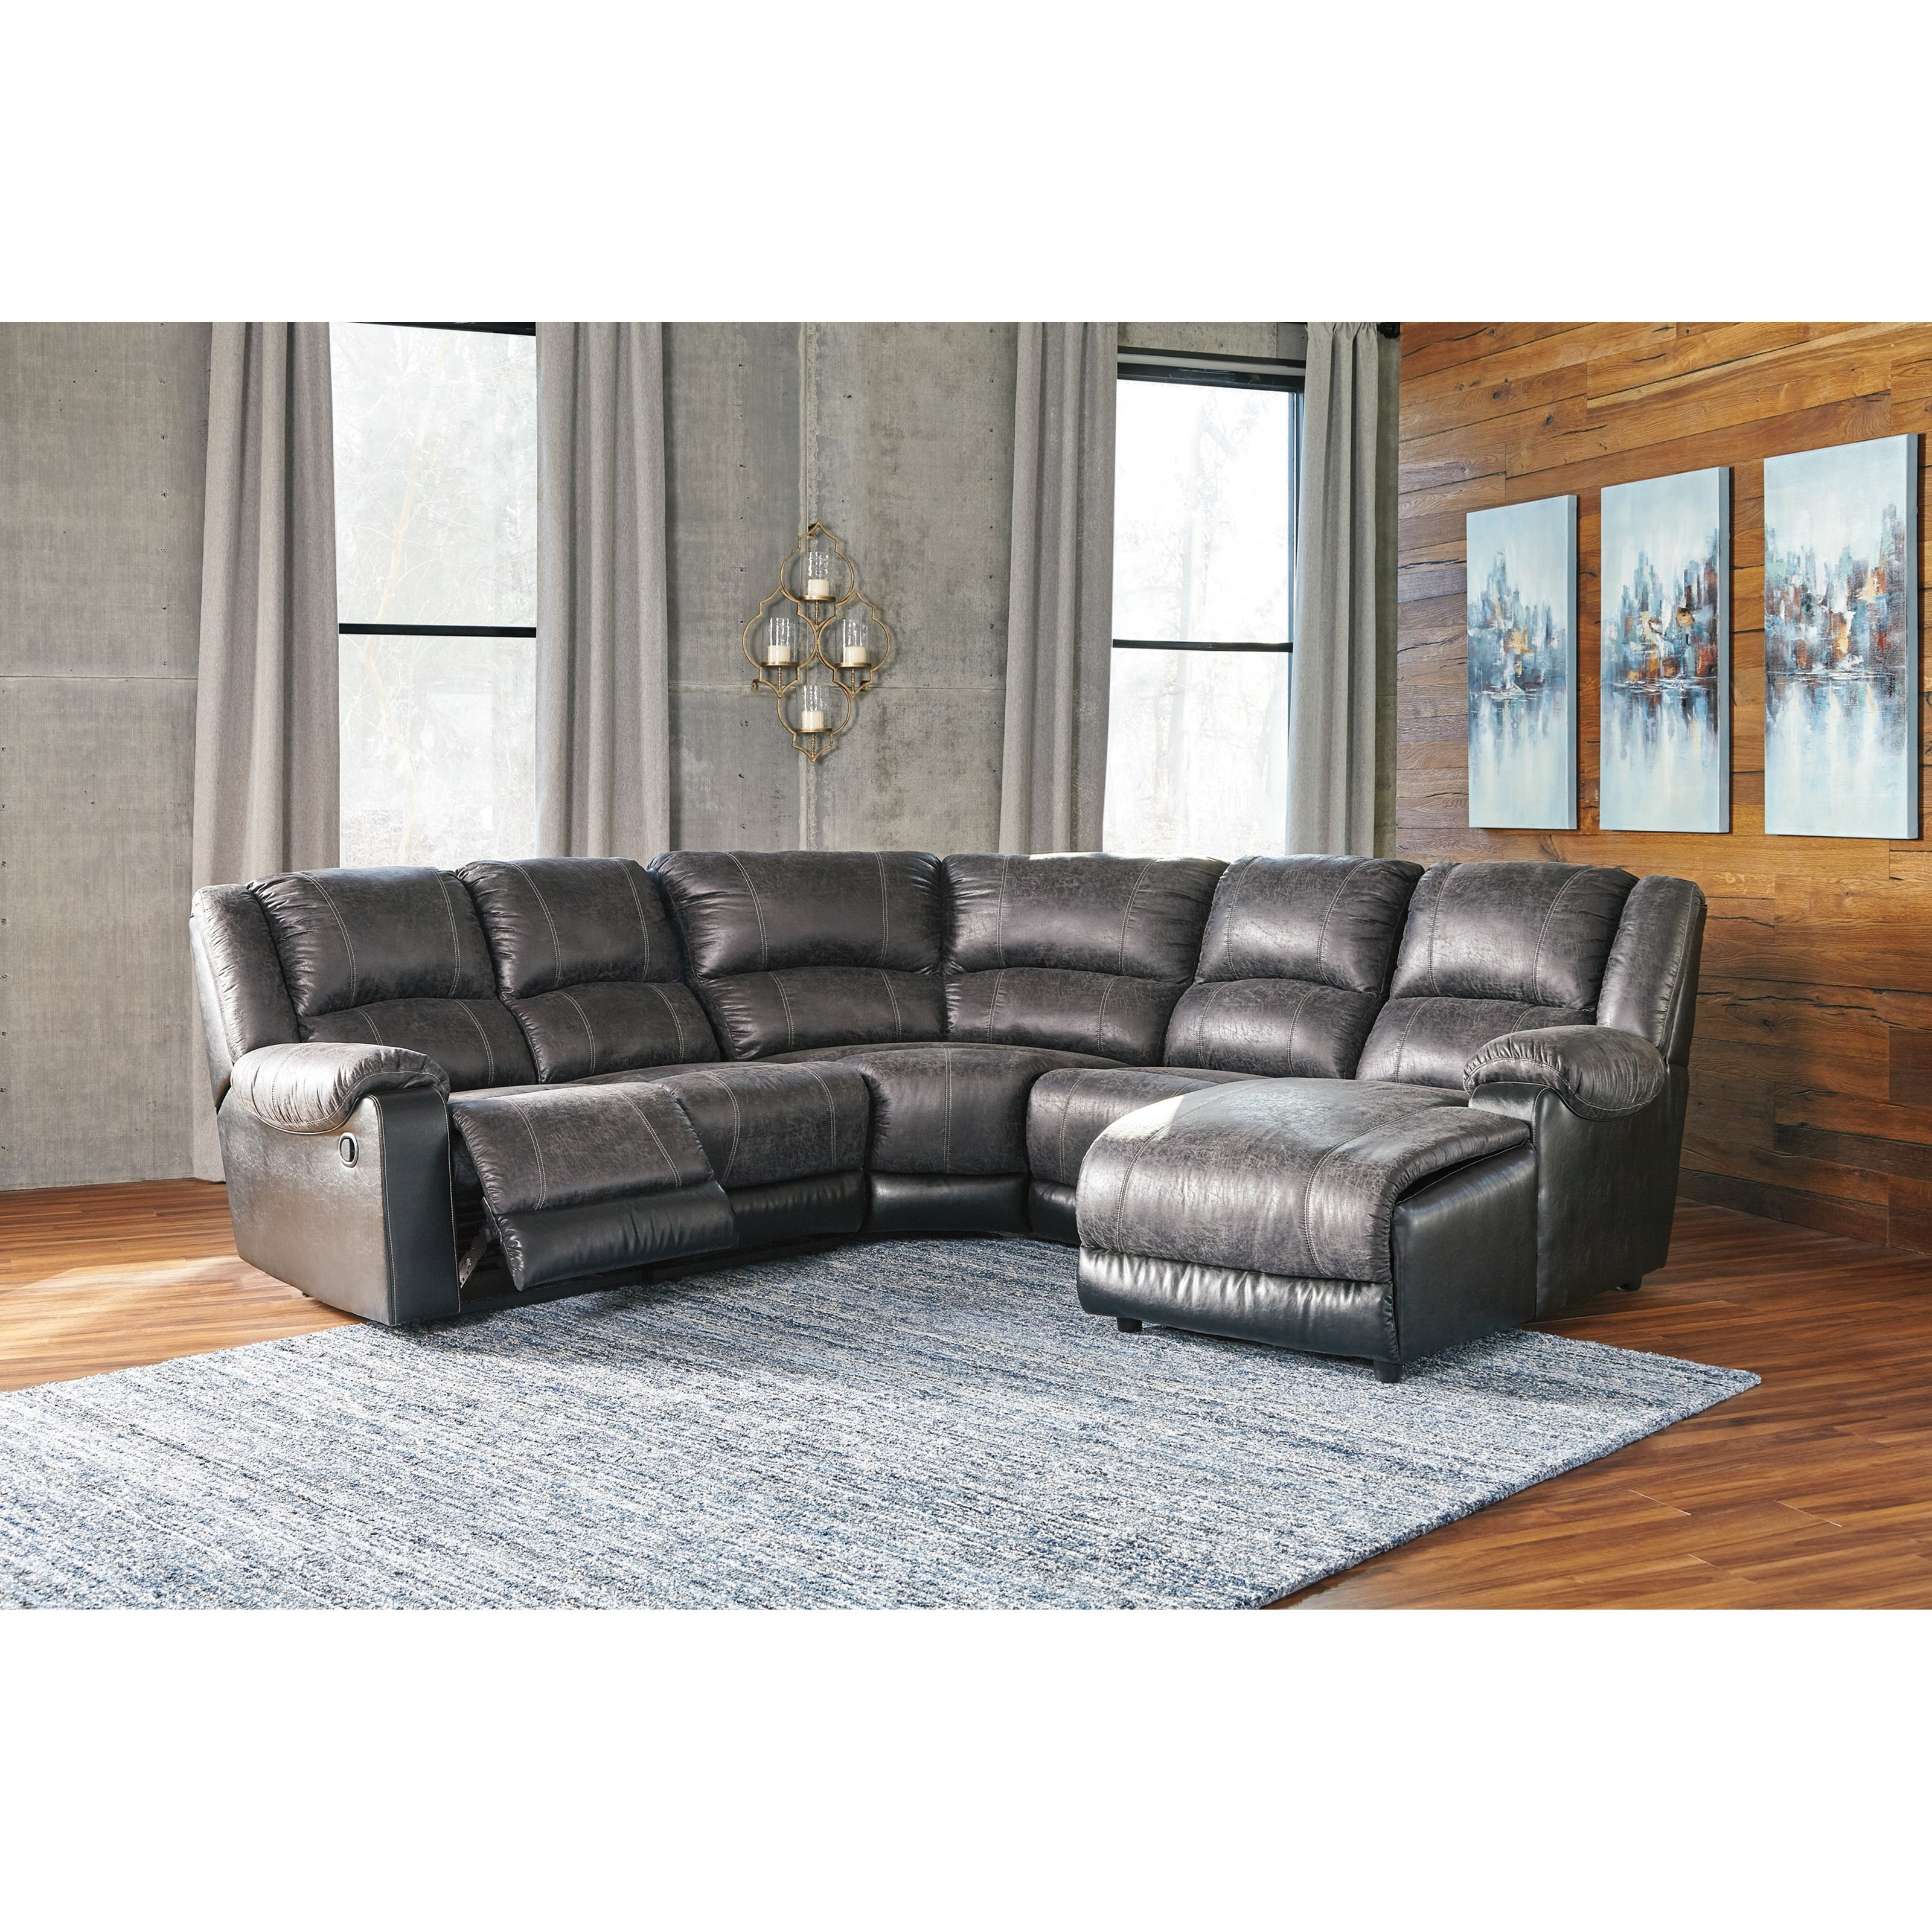 Sectional Sofas With Recliners: Signature Design By Ashley Nantahala Faux Leather